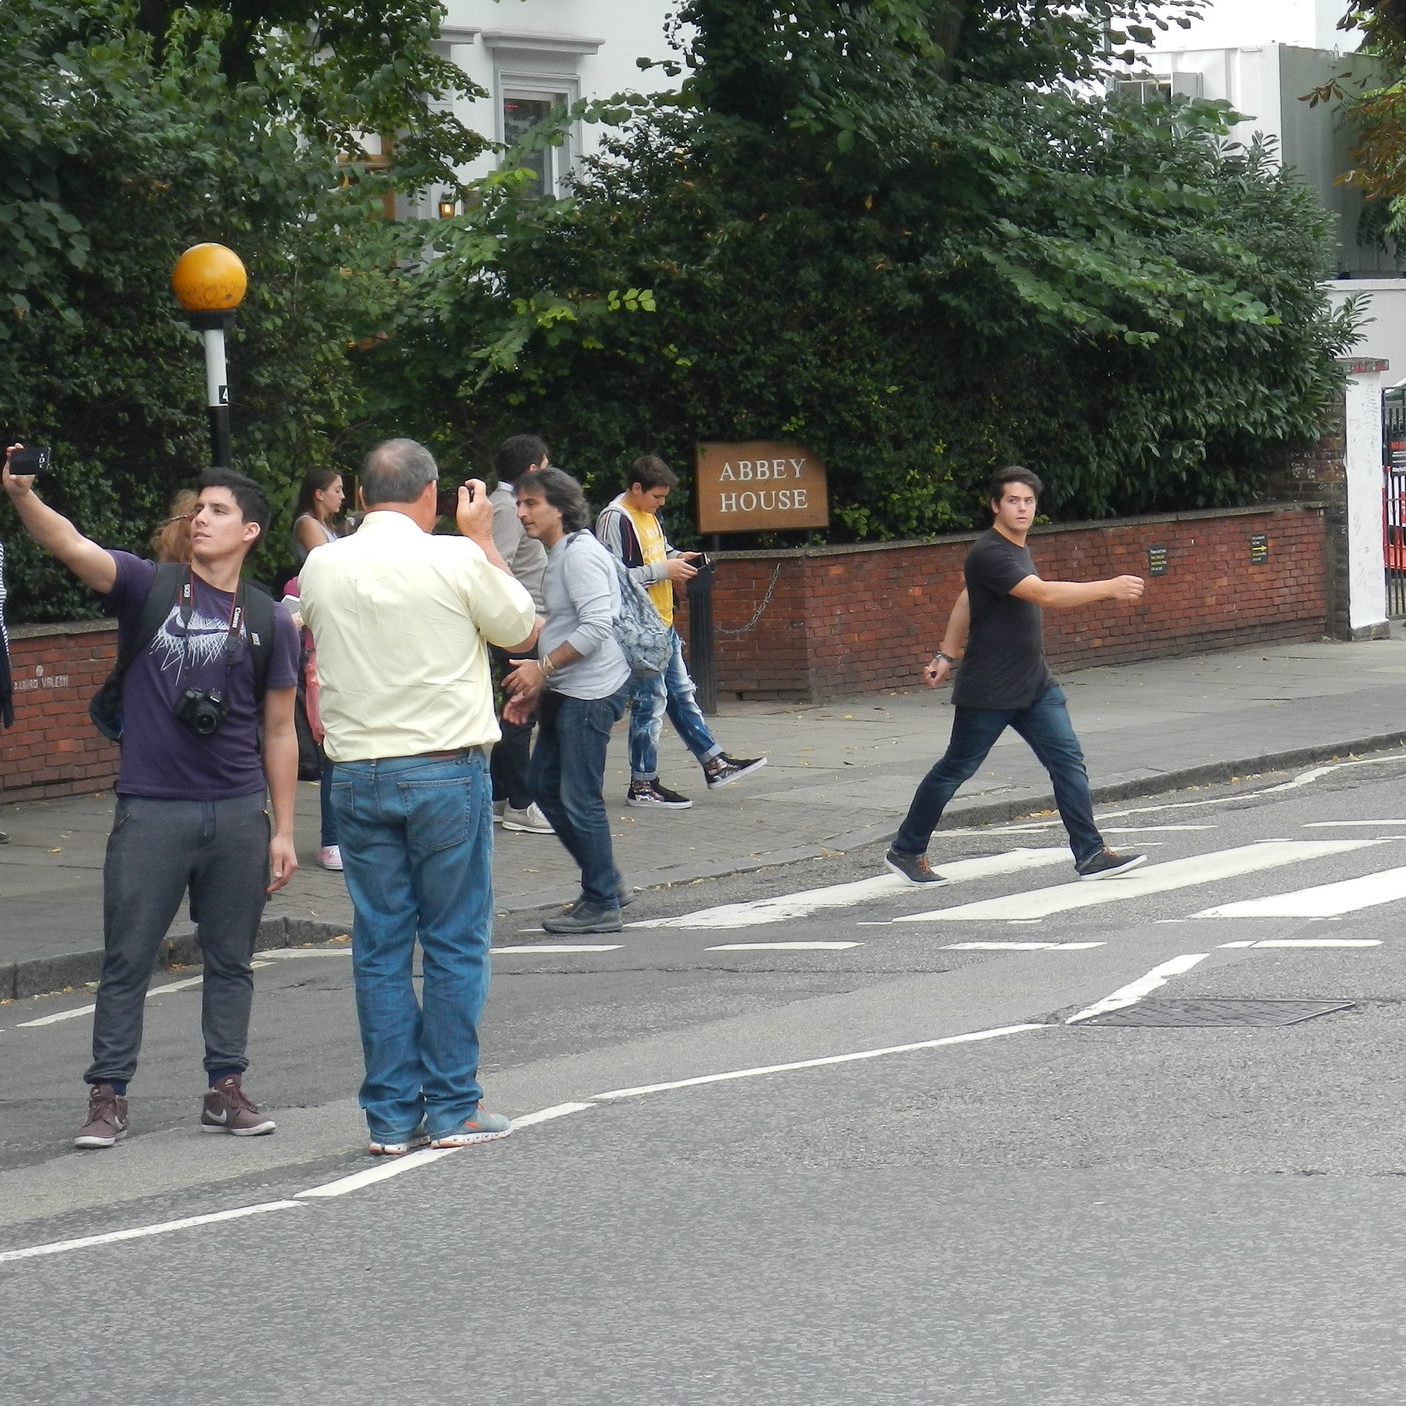 Abbey Road, London by The Doubtful Traveller